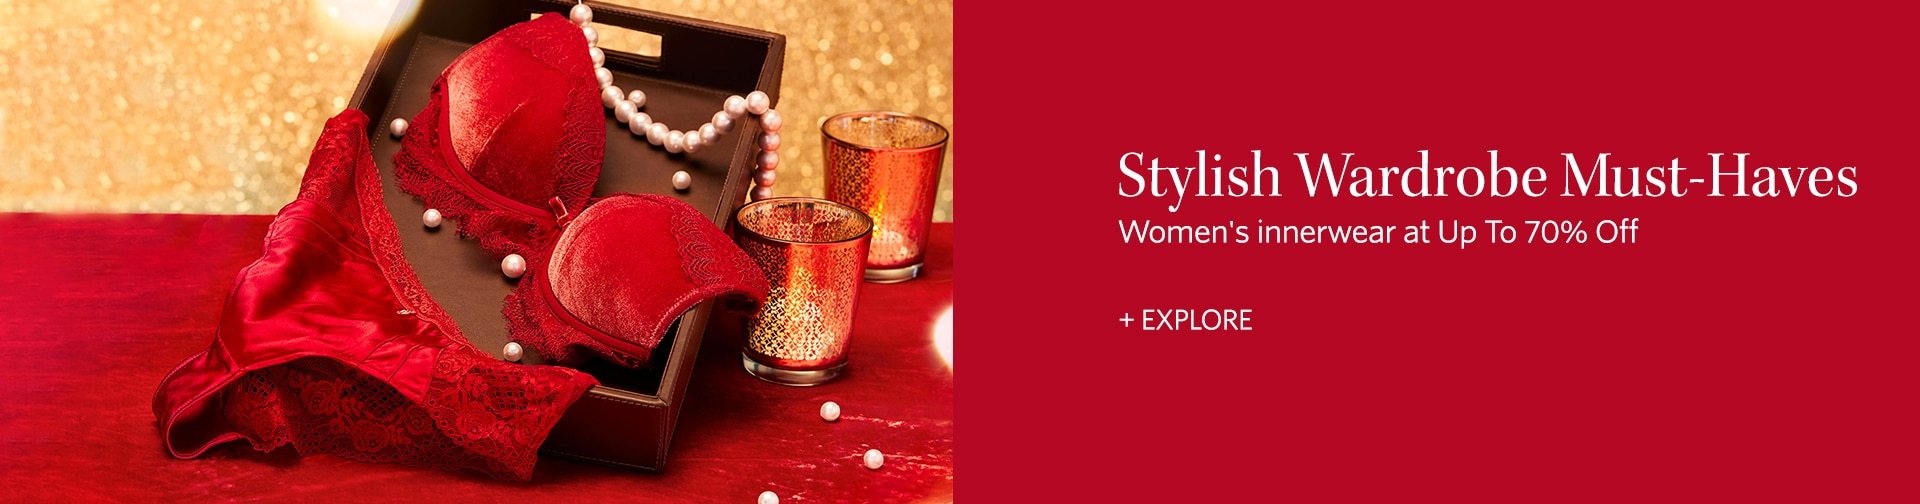 myntra.com - Up to 70% discount on Women's Lingerie and Loungewear